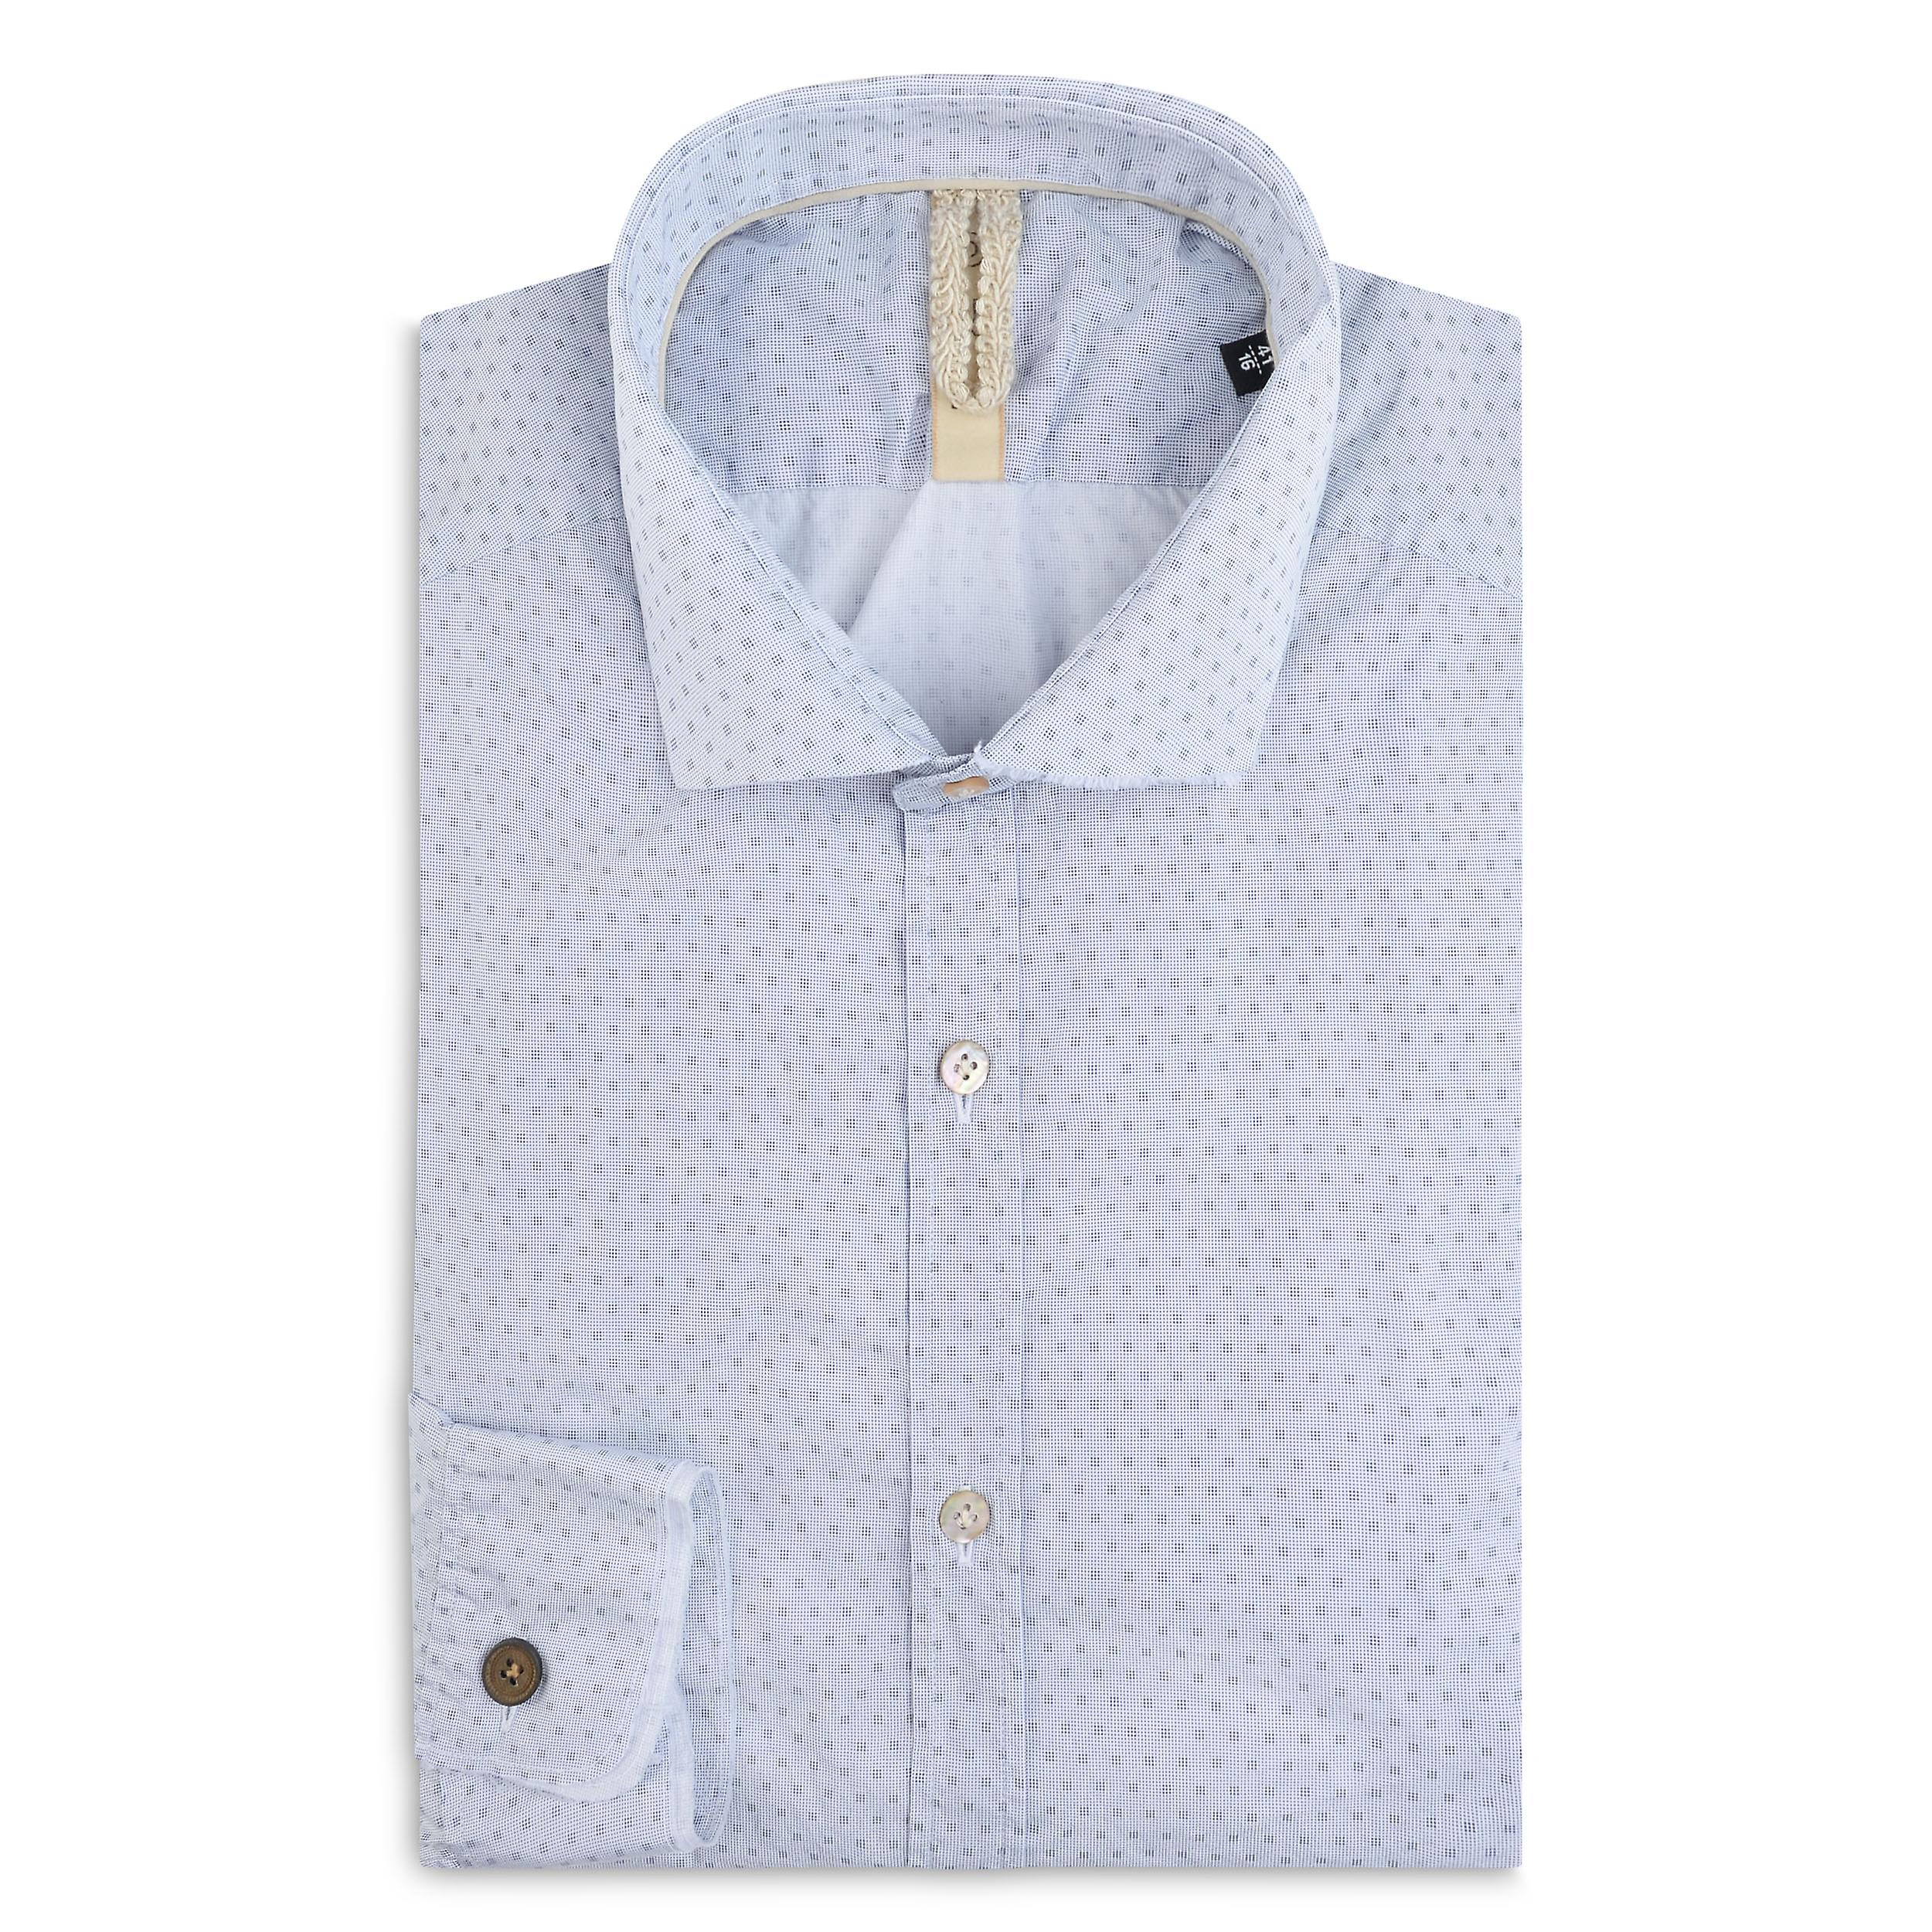 Fabio Giovanni Piccoli Shirt - Mens High Quality Italian Poplin Cotton Casual Shirt